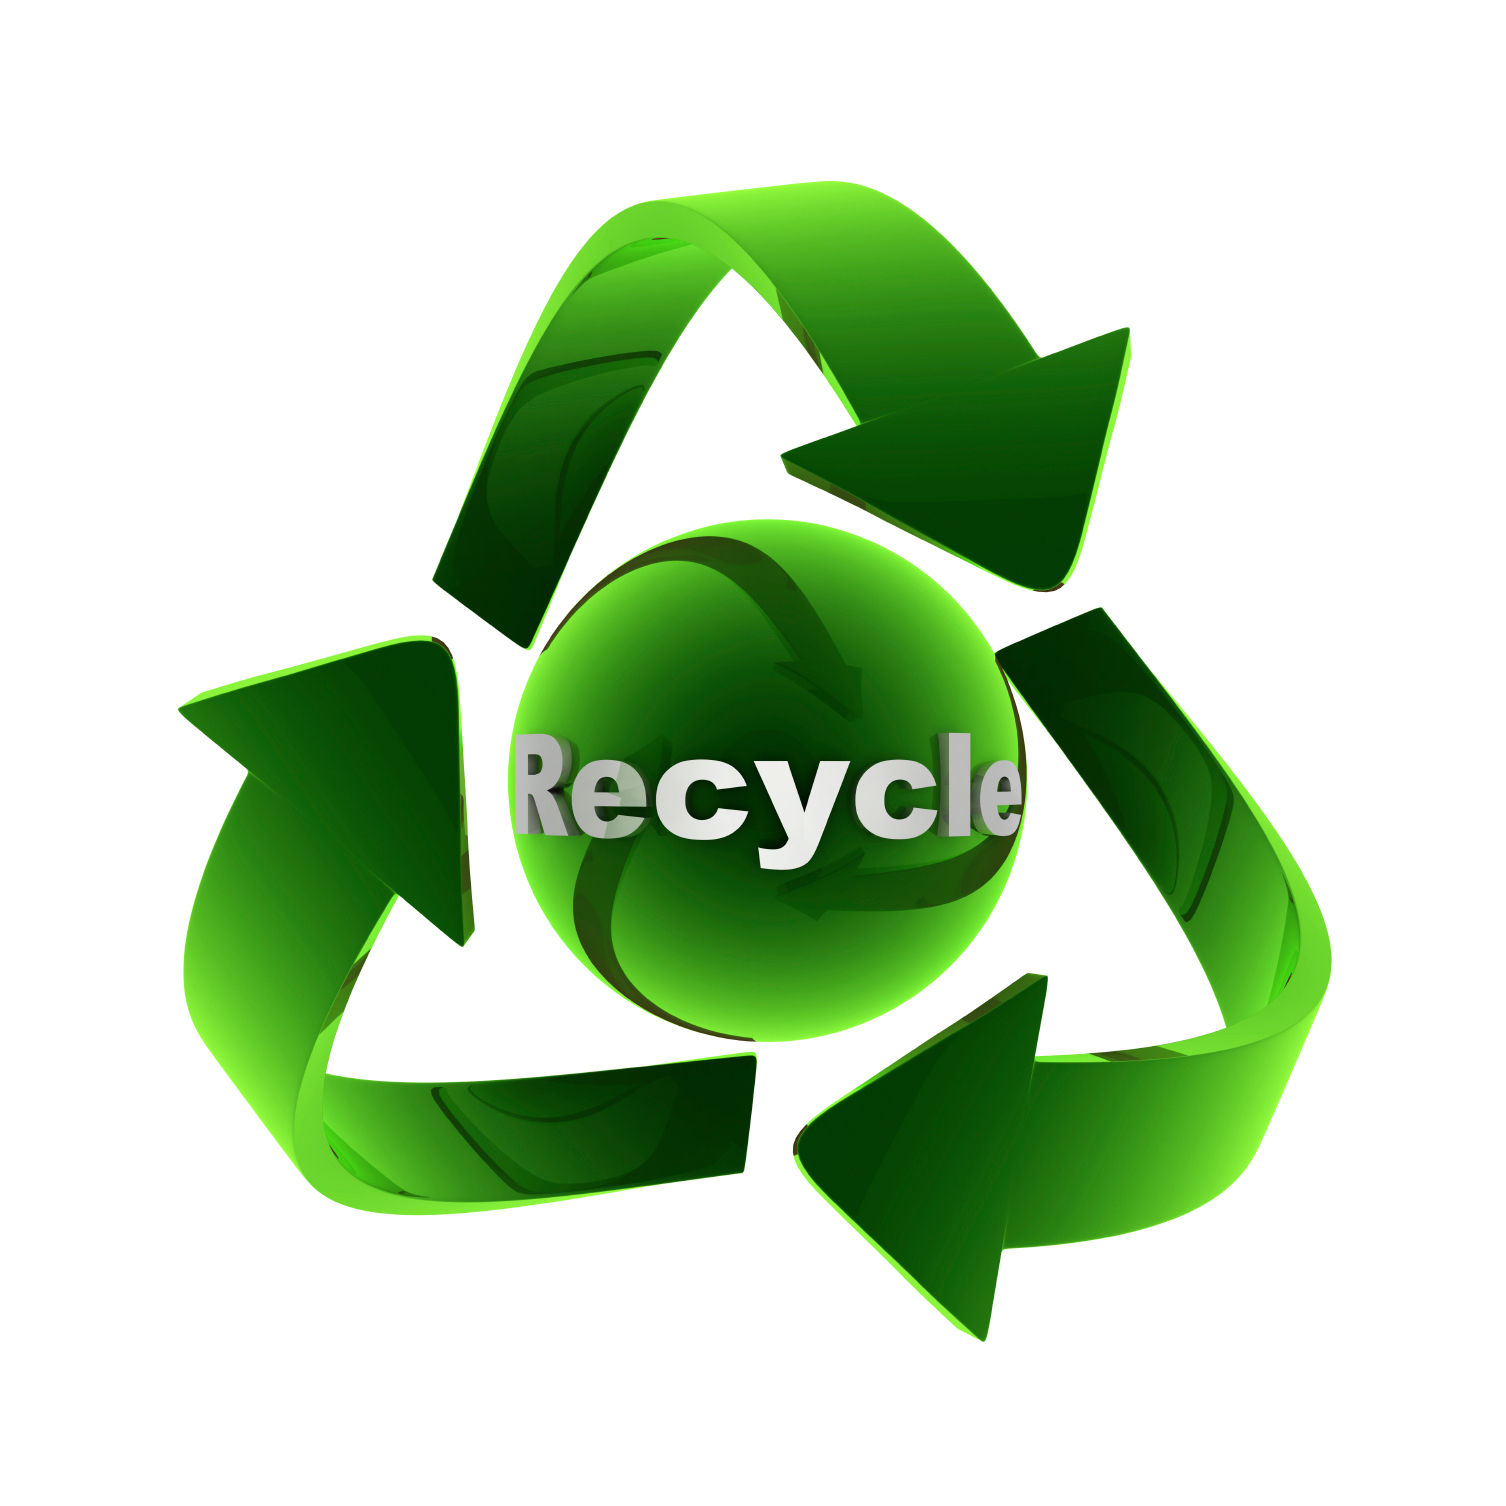 Pcb Weee E Scrap Recycling likewise Chemical Barrels Shredder ES S1050 Pd6329444 as well Viewtopic as well Scrap Metal Recycling as well Go Green Recycle Your Christmas Lights. on scrap aluminum radiator